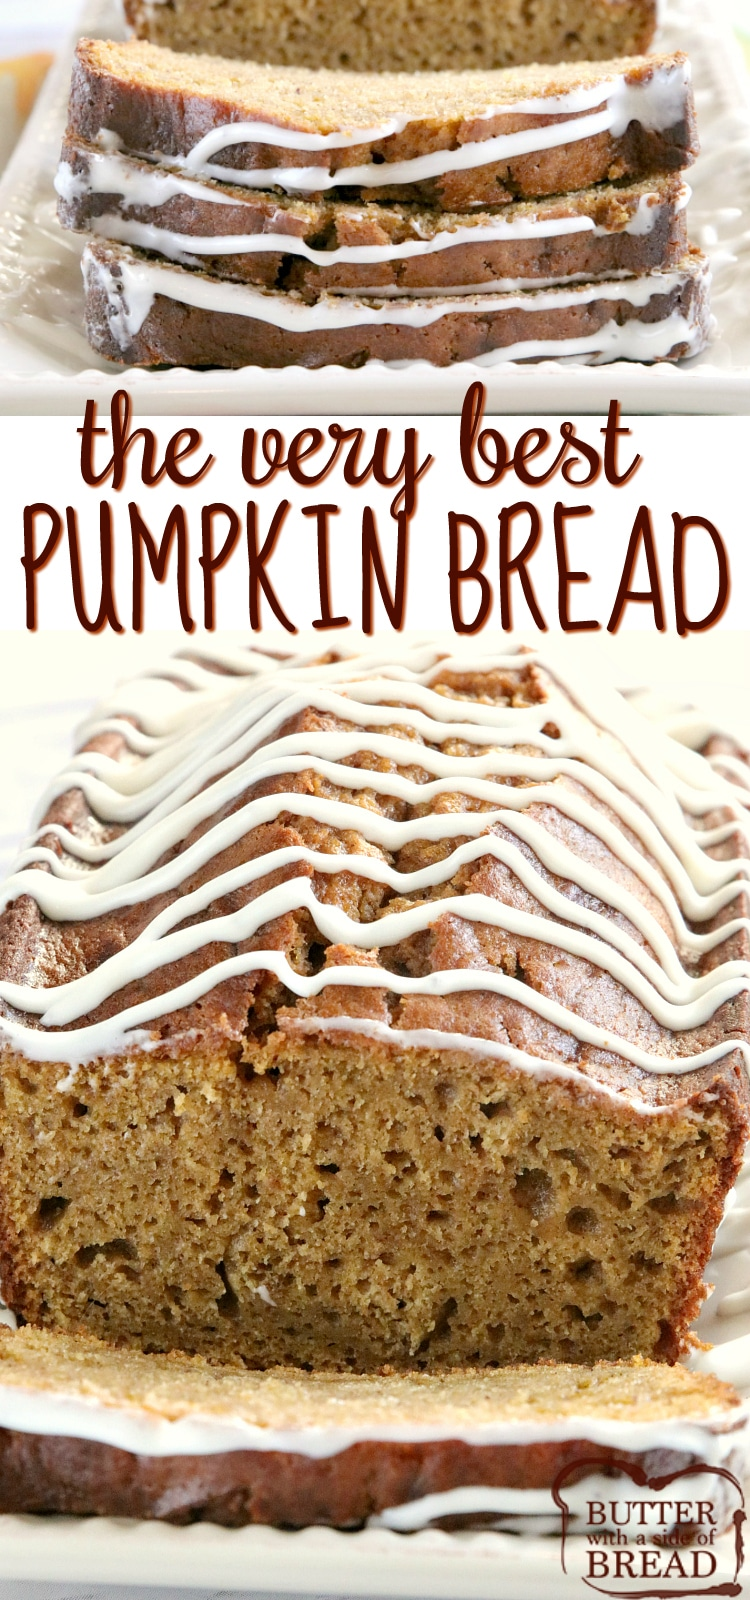 Best Pumpkin Bread that is soft and delicious because it is made with canned pumpkin, vanilla and butterscotch pudding mixes. This pumpkin quick bread recipe is also topped with a delicious cream cheese glaze!